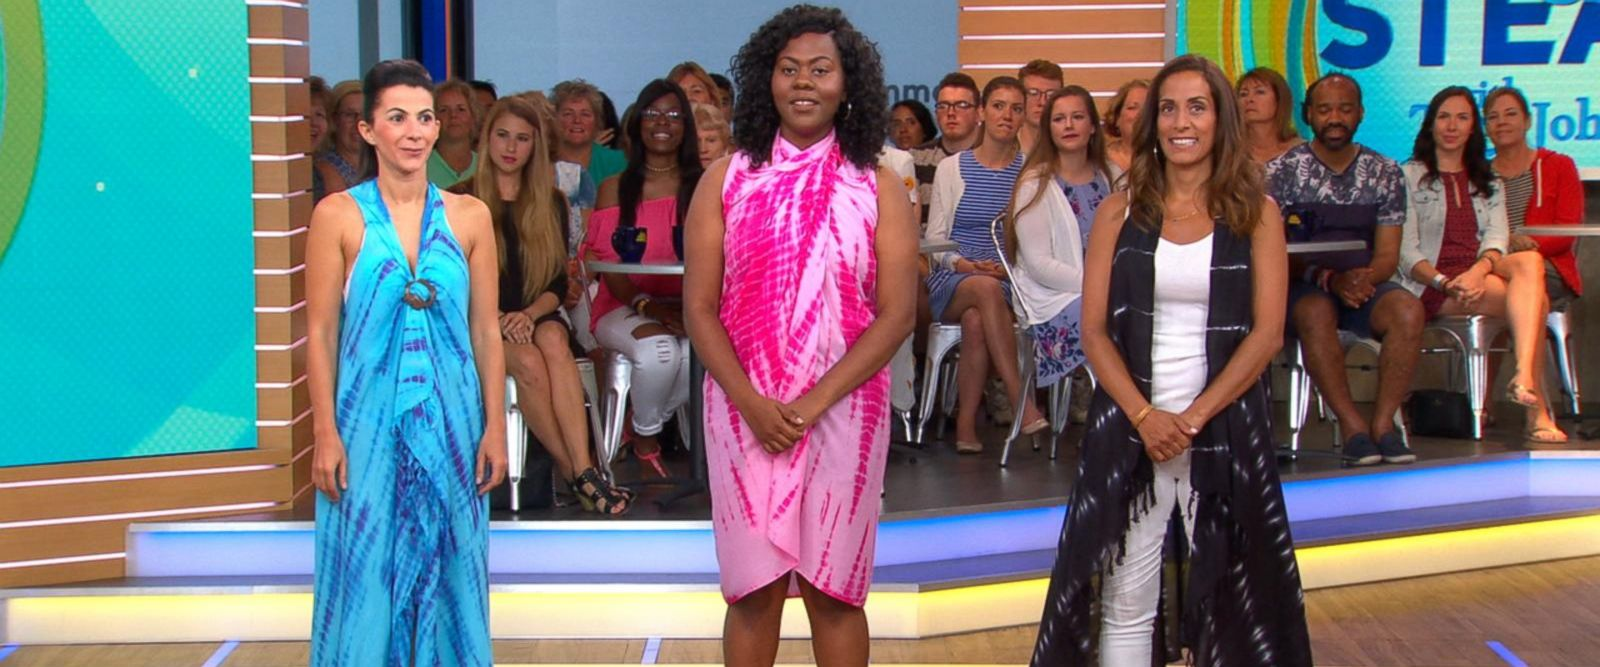 VIDEO: Deals and steals: Bargains on summer fashion must-haves